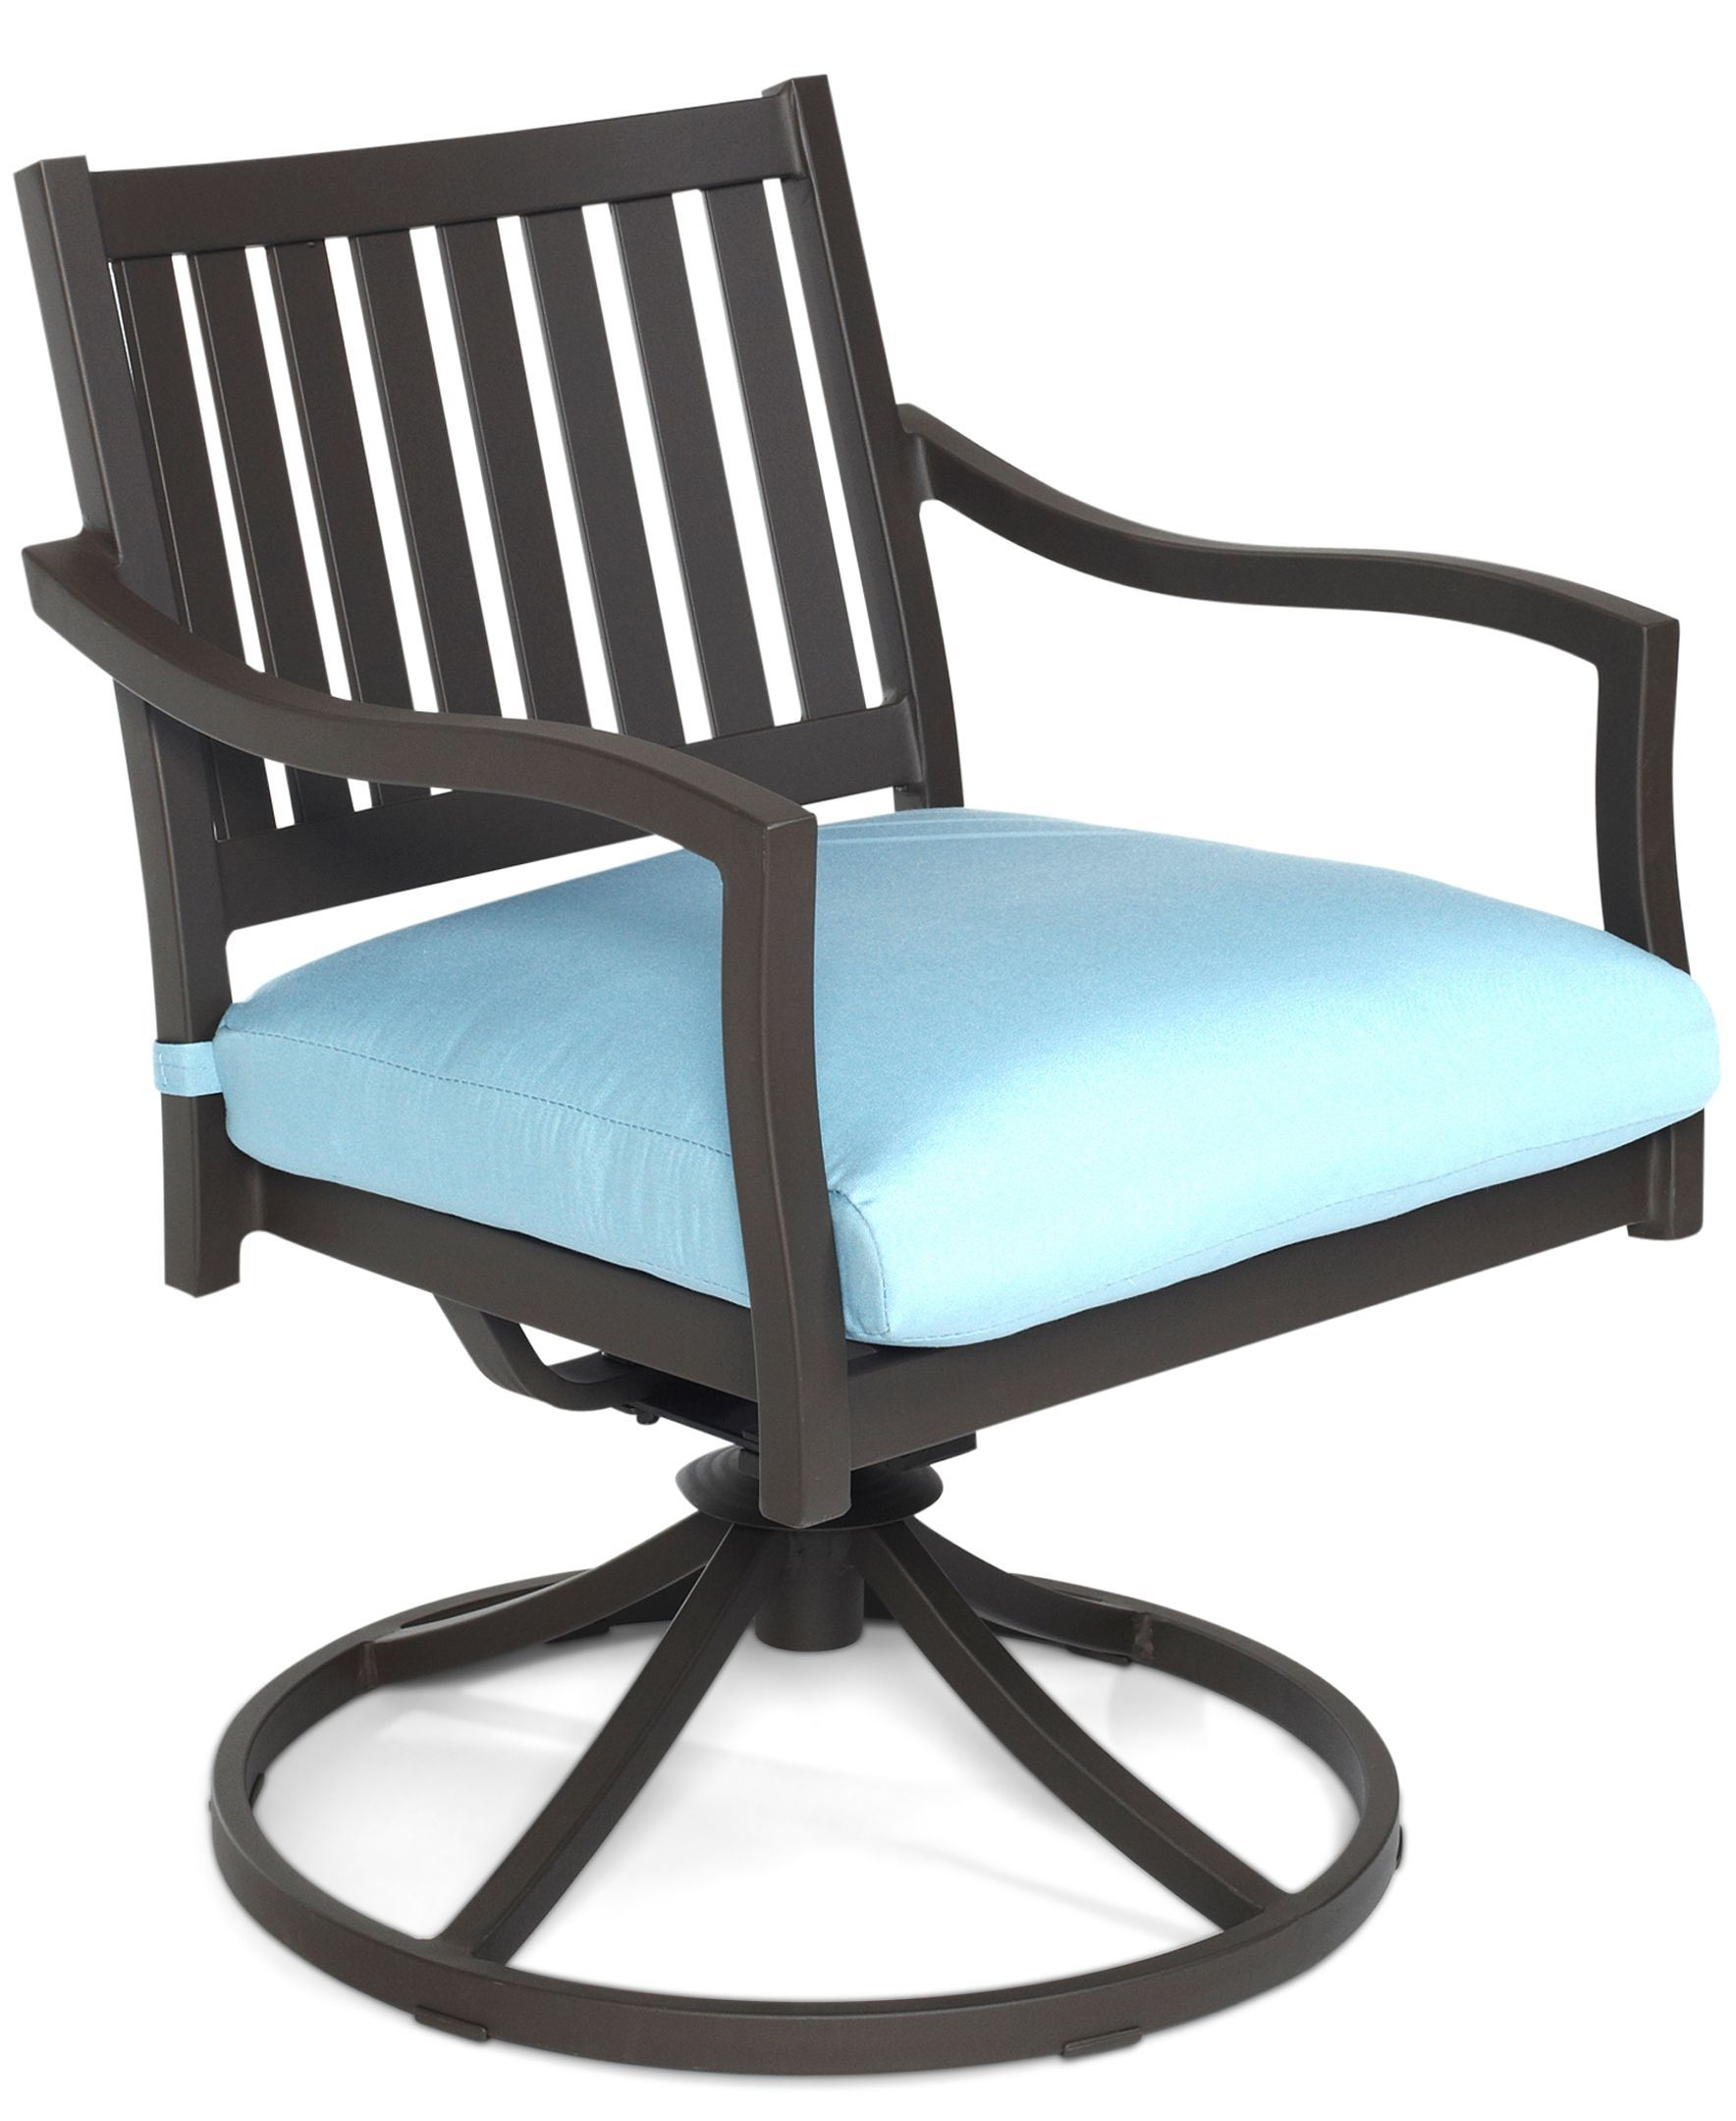 Swivel patio chairs  sc 1 st  Foter : swivel patio chairs - Cheerinfomania.Com